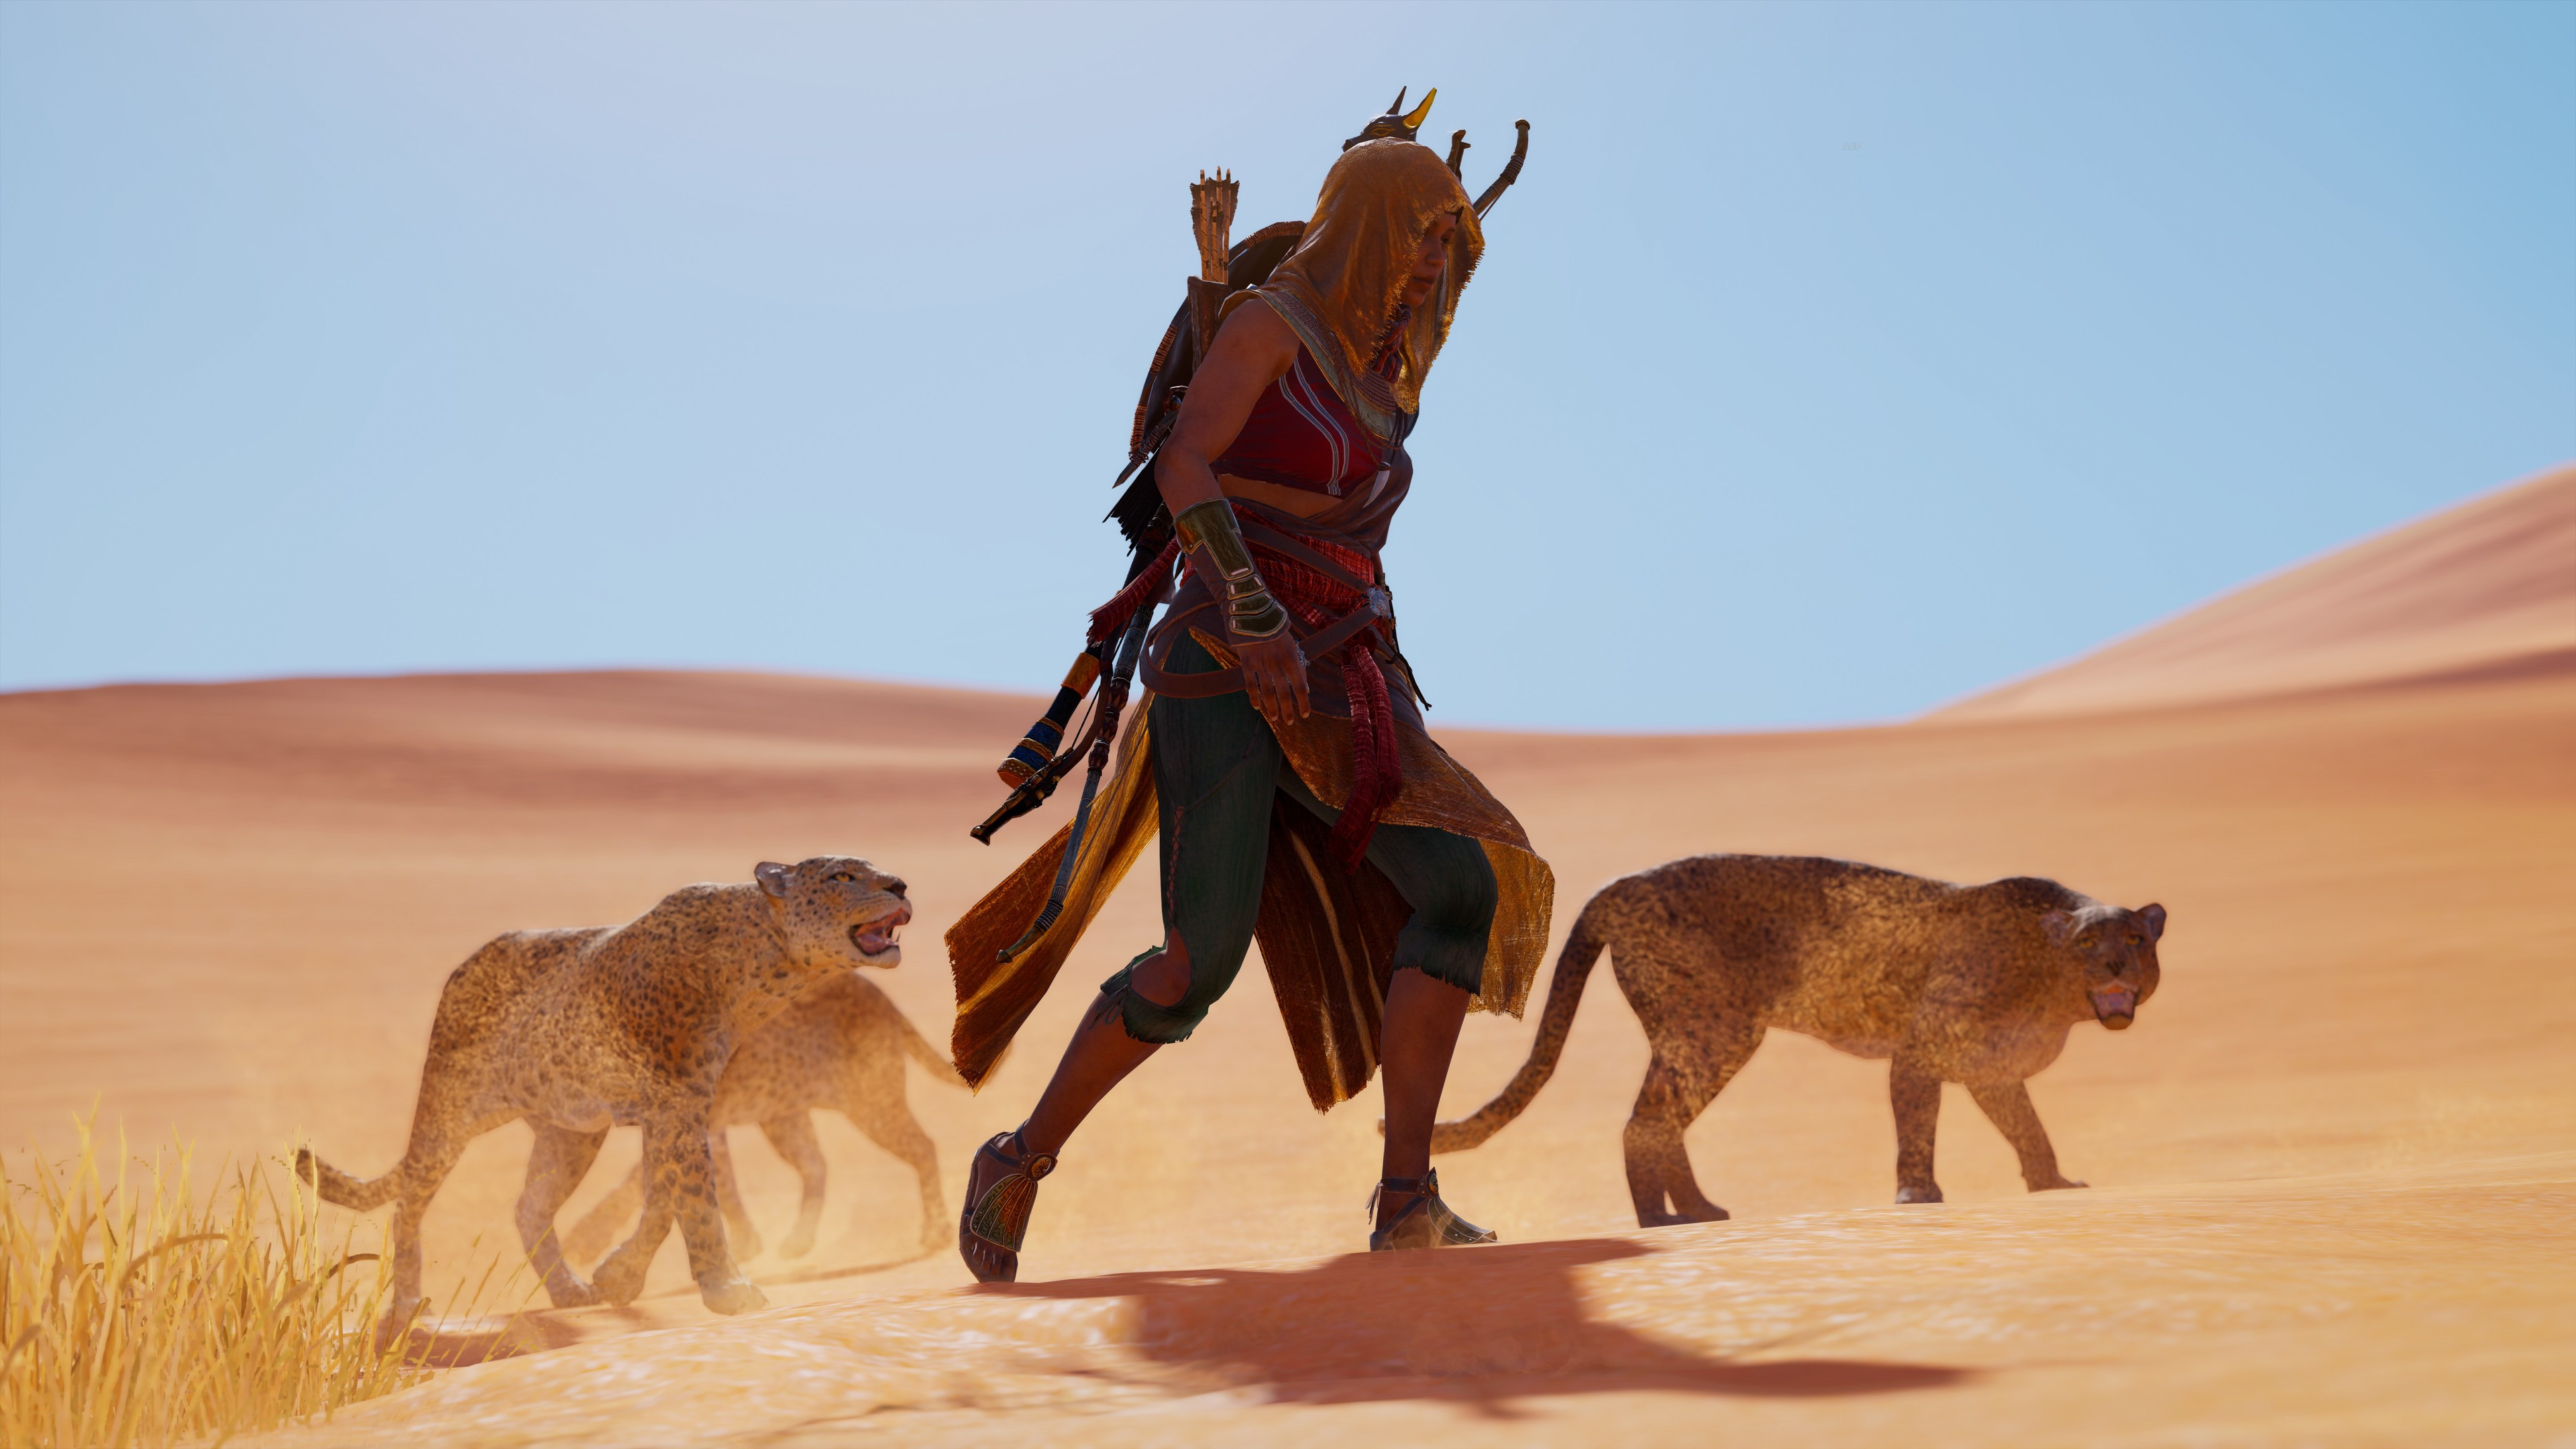 Wallpaper 4k Bayek Assassins Creed Origins Ubisoft 5k 4k